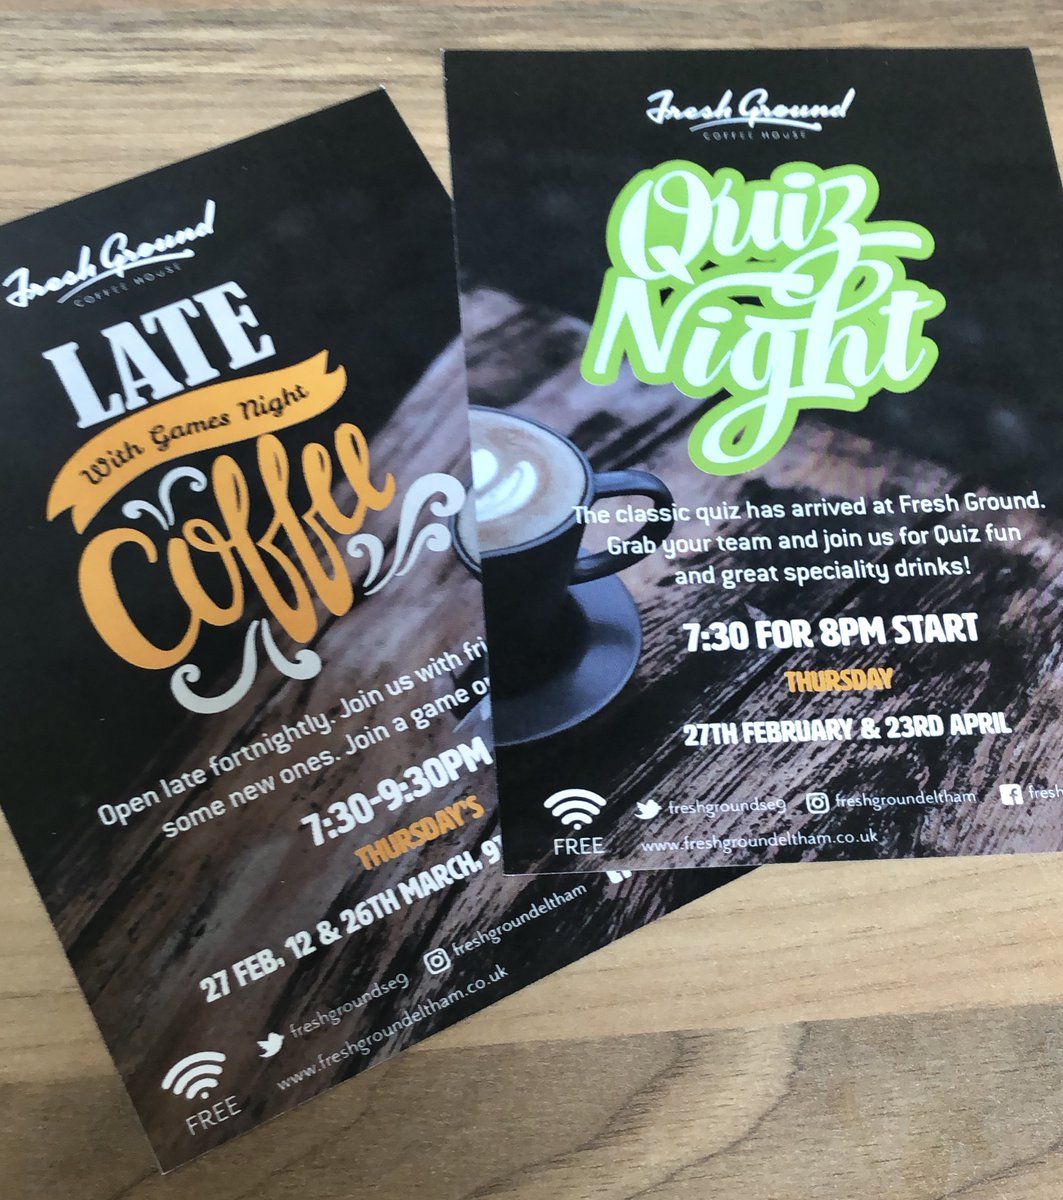 We are open late again, this Thursday 27th February at 7:30-9:30pm. With our first ever Quiz Night. Bring a team or join one, all for fun!. #communitycafe #locallyroastedcoffee #eltham #openlate #coffee #gamesnightpic.twitter.com/1lKMP0vCF9